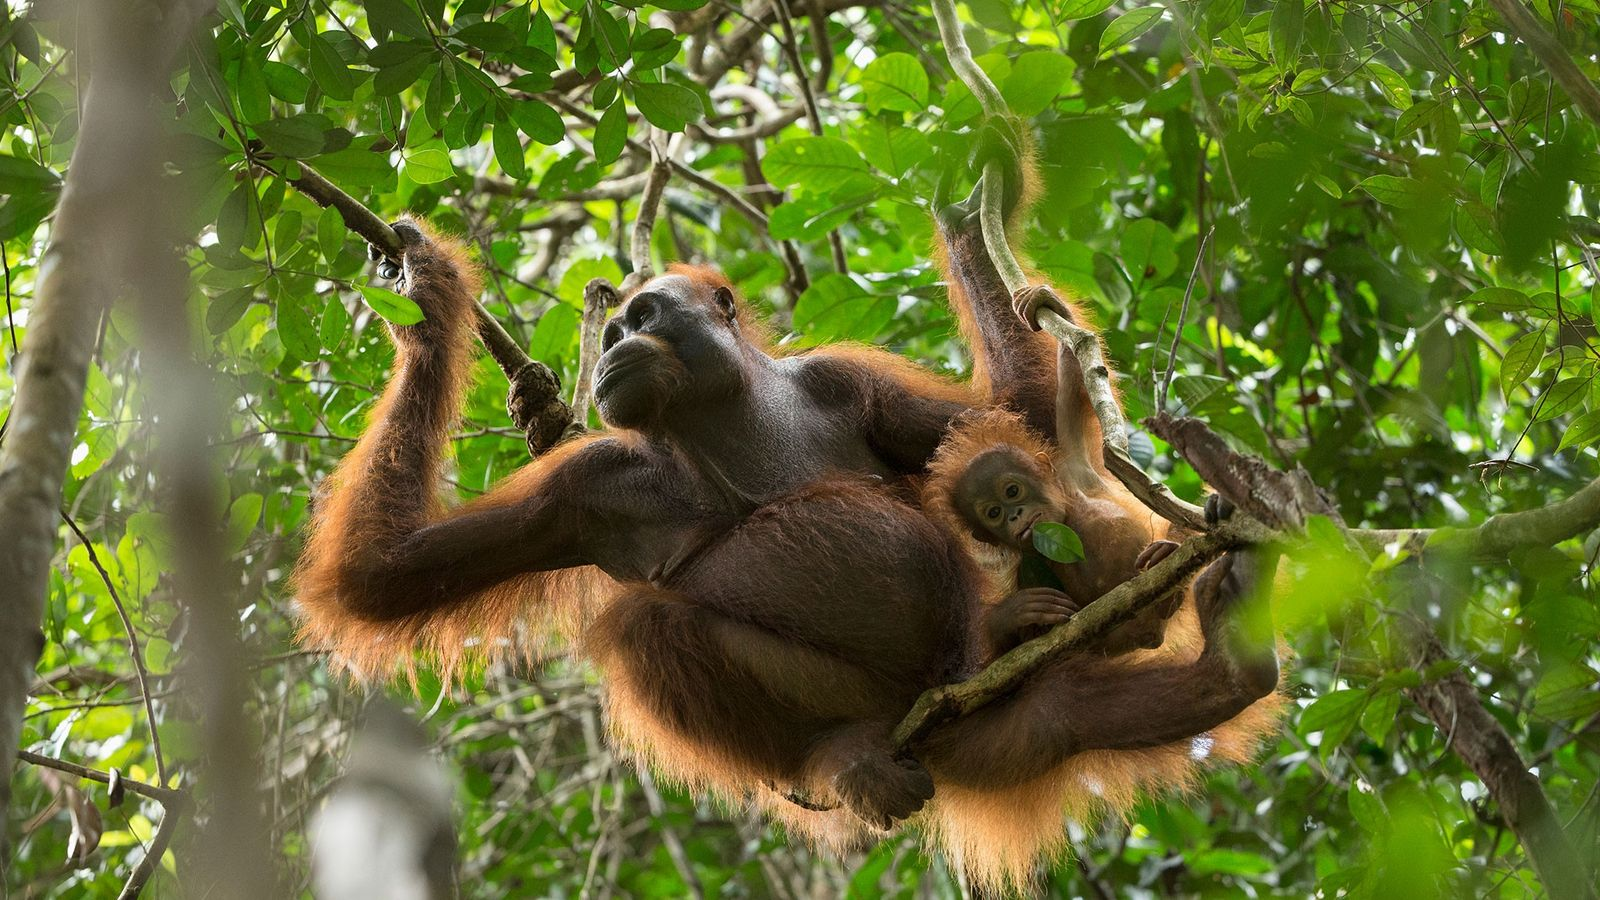 An 11-month-old Bornean orangutan hangs out with its mother.